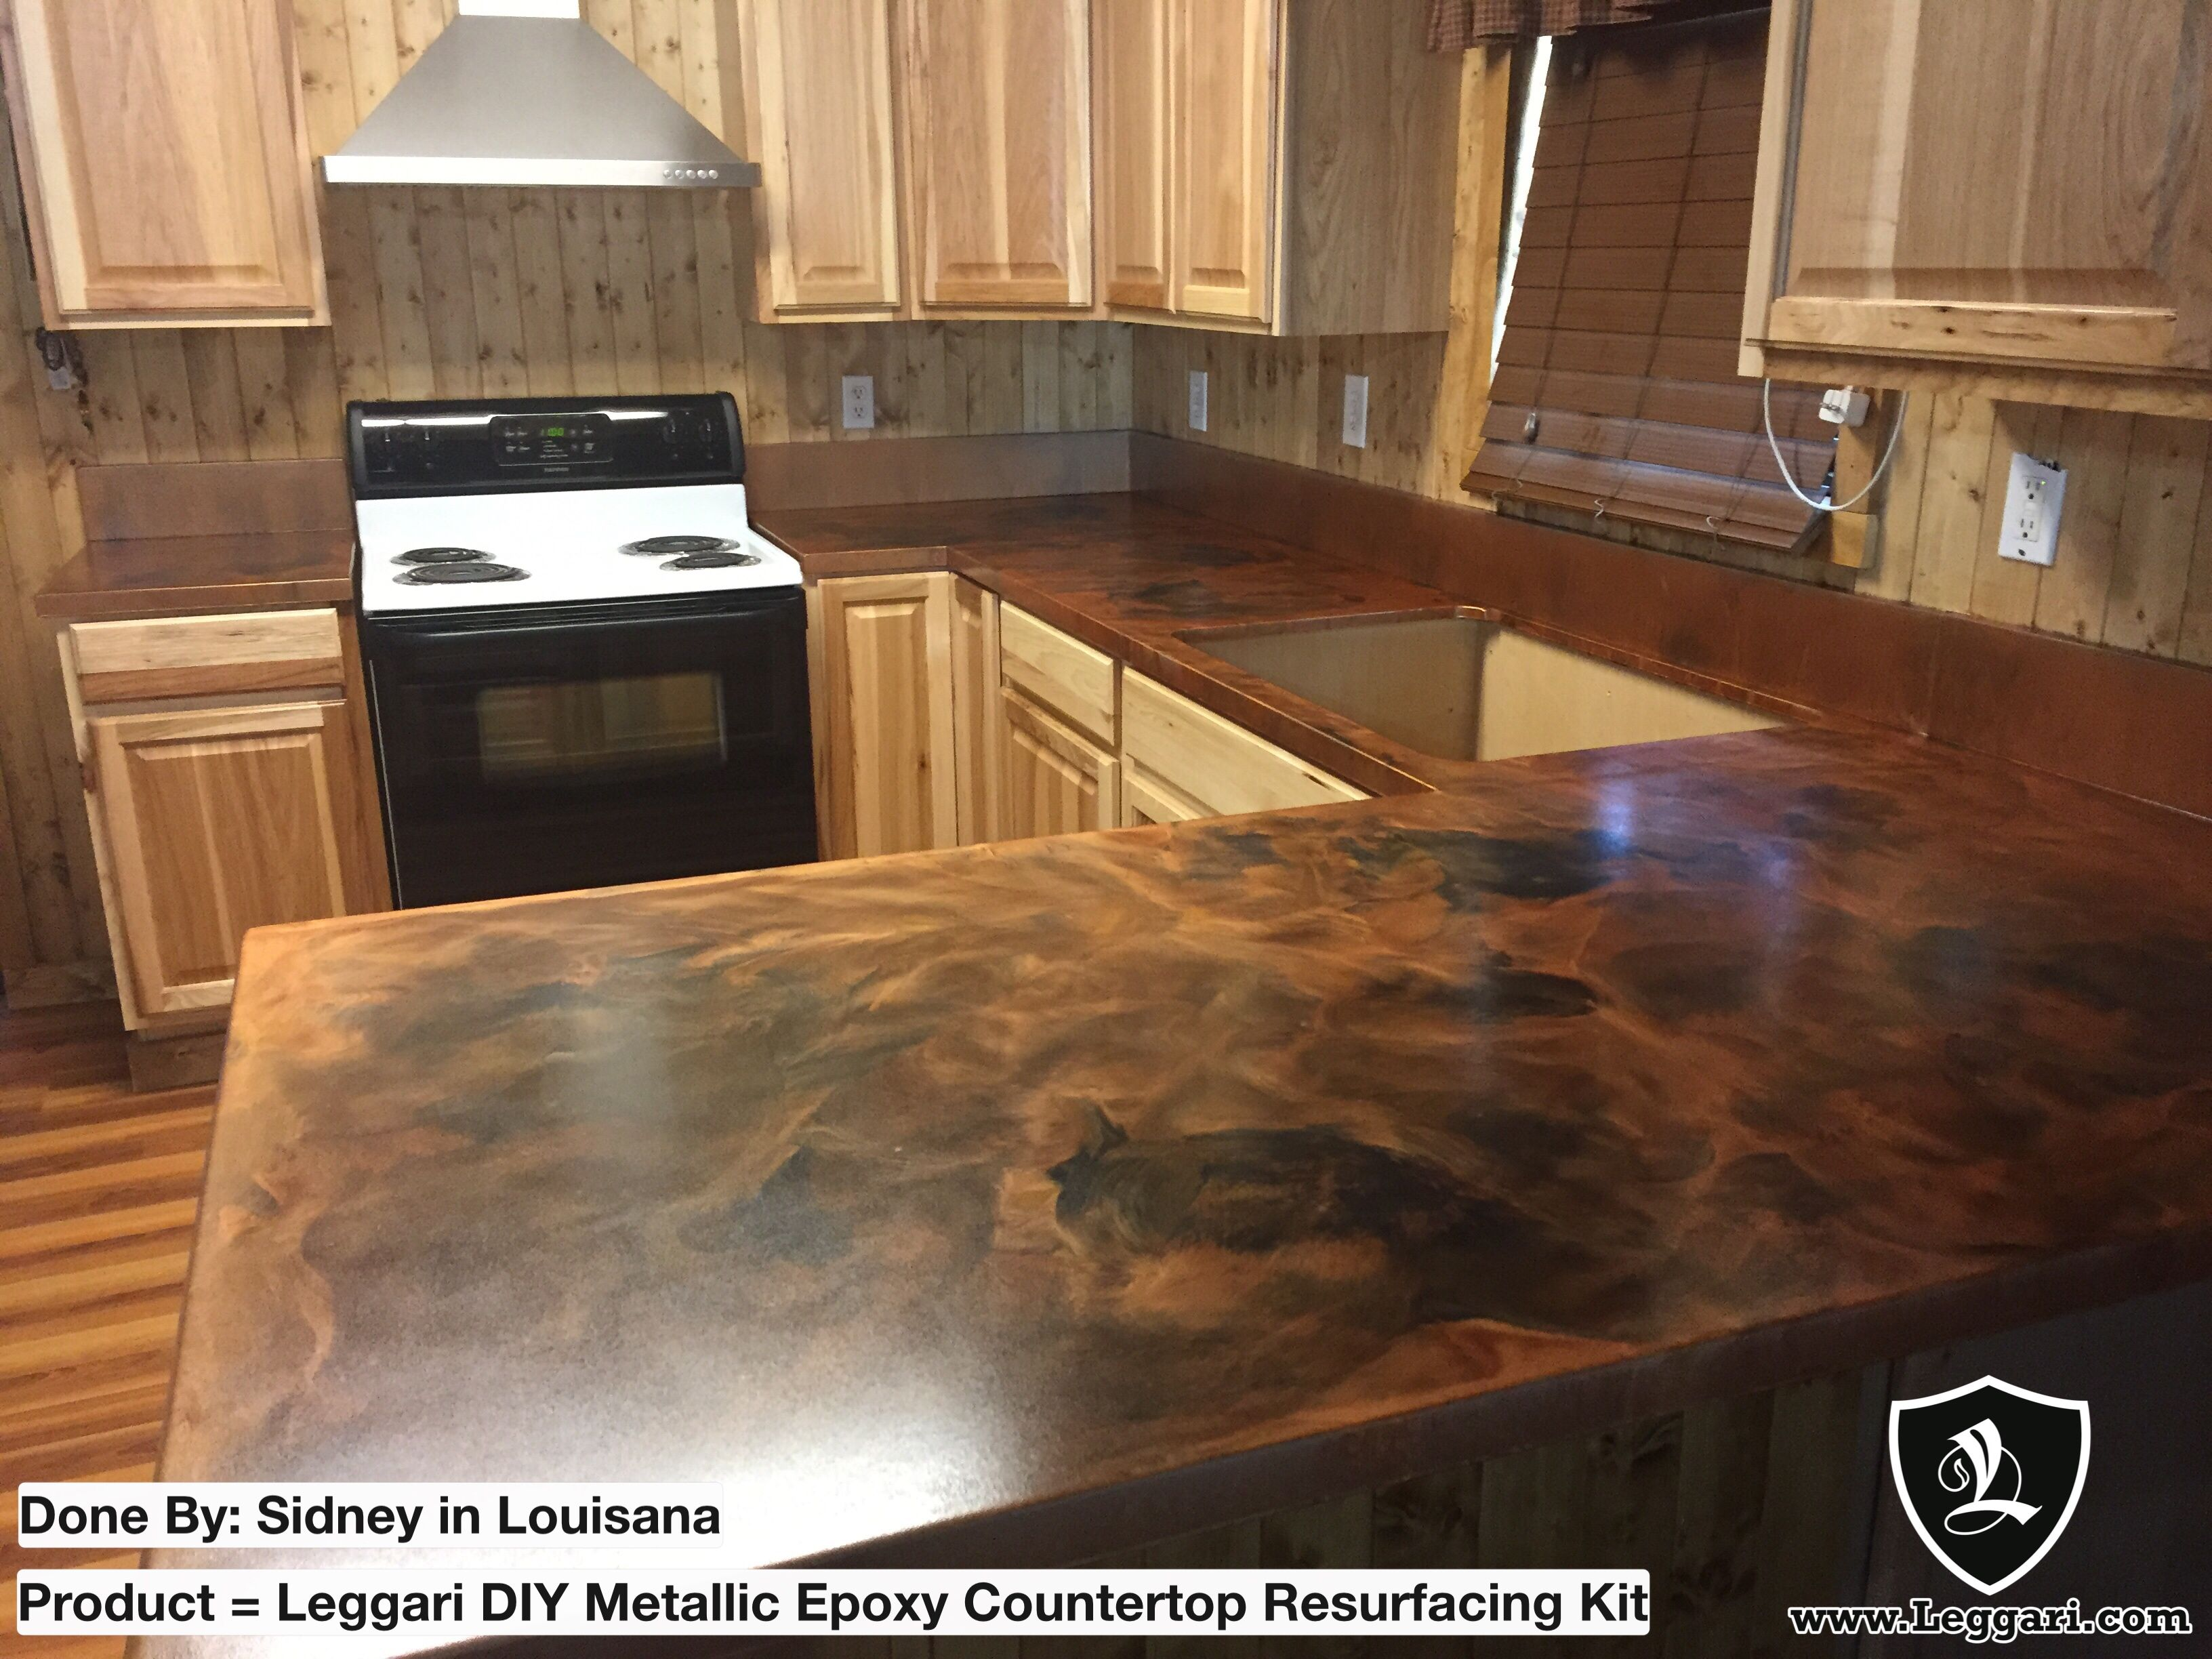 resurface kitchen lowes formica decorationc black belanger countertops ideas si how elegant in inspiring plus to amber for furniture sheets samples milano full sheeta wilsonart plastic cabinet x home countertop laminate glass premium